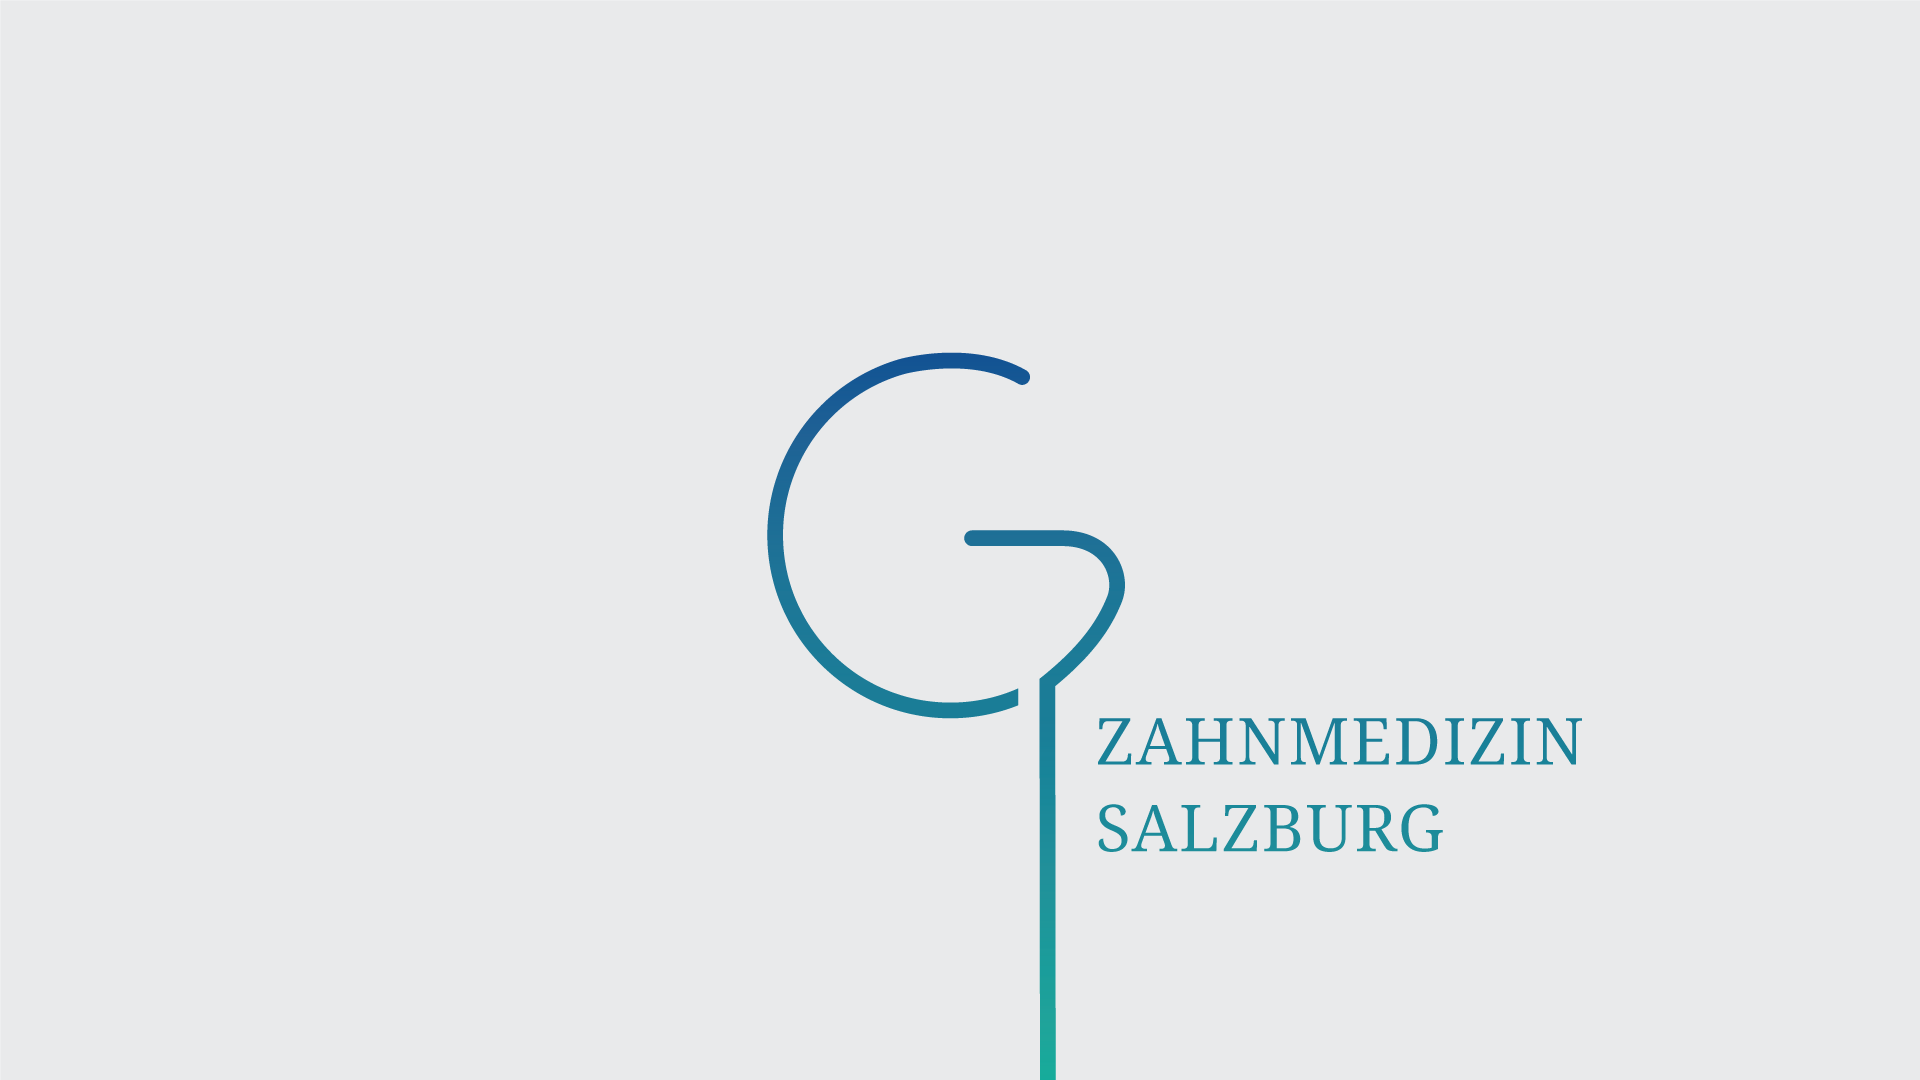 Logo And Brand Identity Design For Salzburg Dentist It Was Required That The Represents Letter G According To Owners Surname